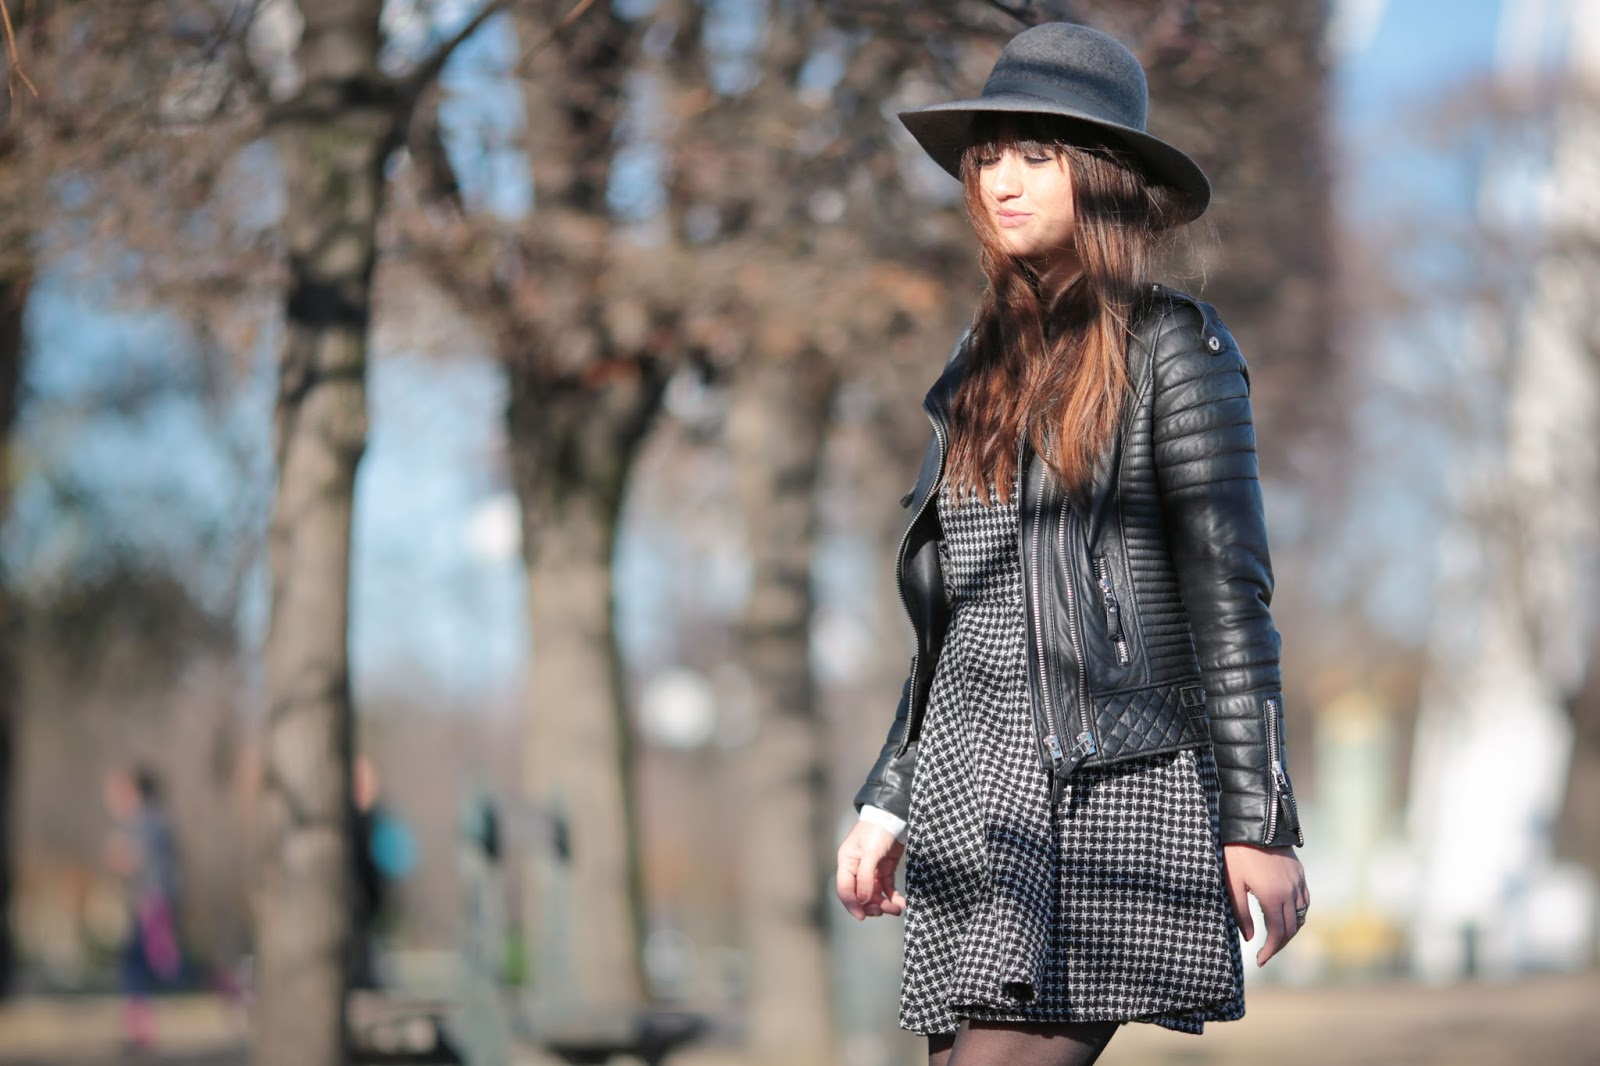 Paris, Blogger, Fashion, Style, Meet me in paree, Streetstyle